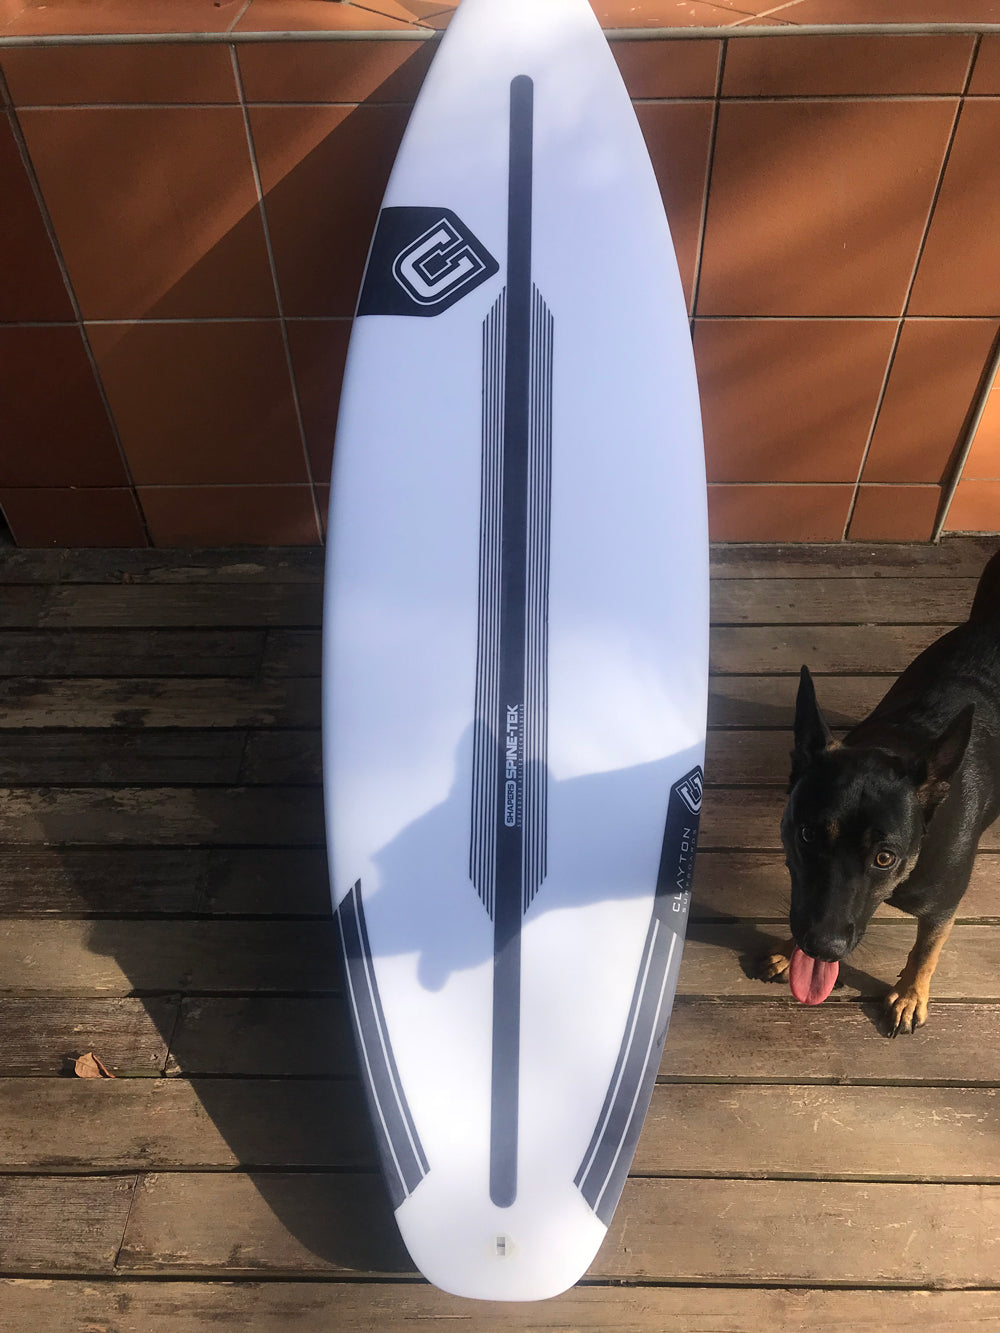 c327d1000a6 A Board Review - The HAVOK in Spine-Tek by Clayton Surfboards – Pollywog